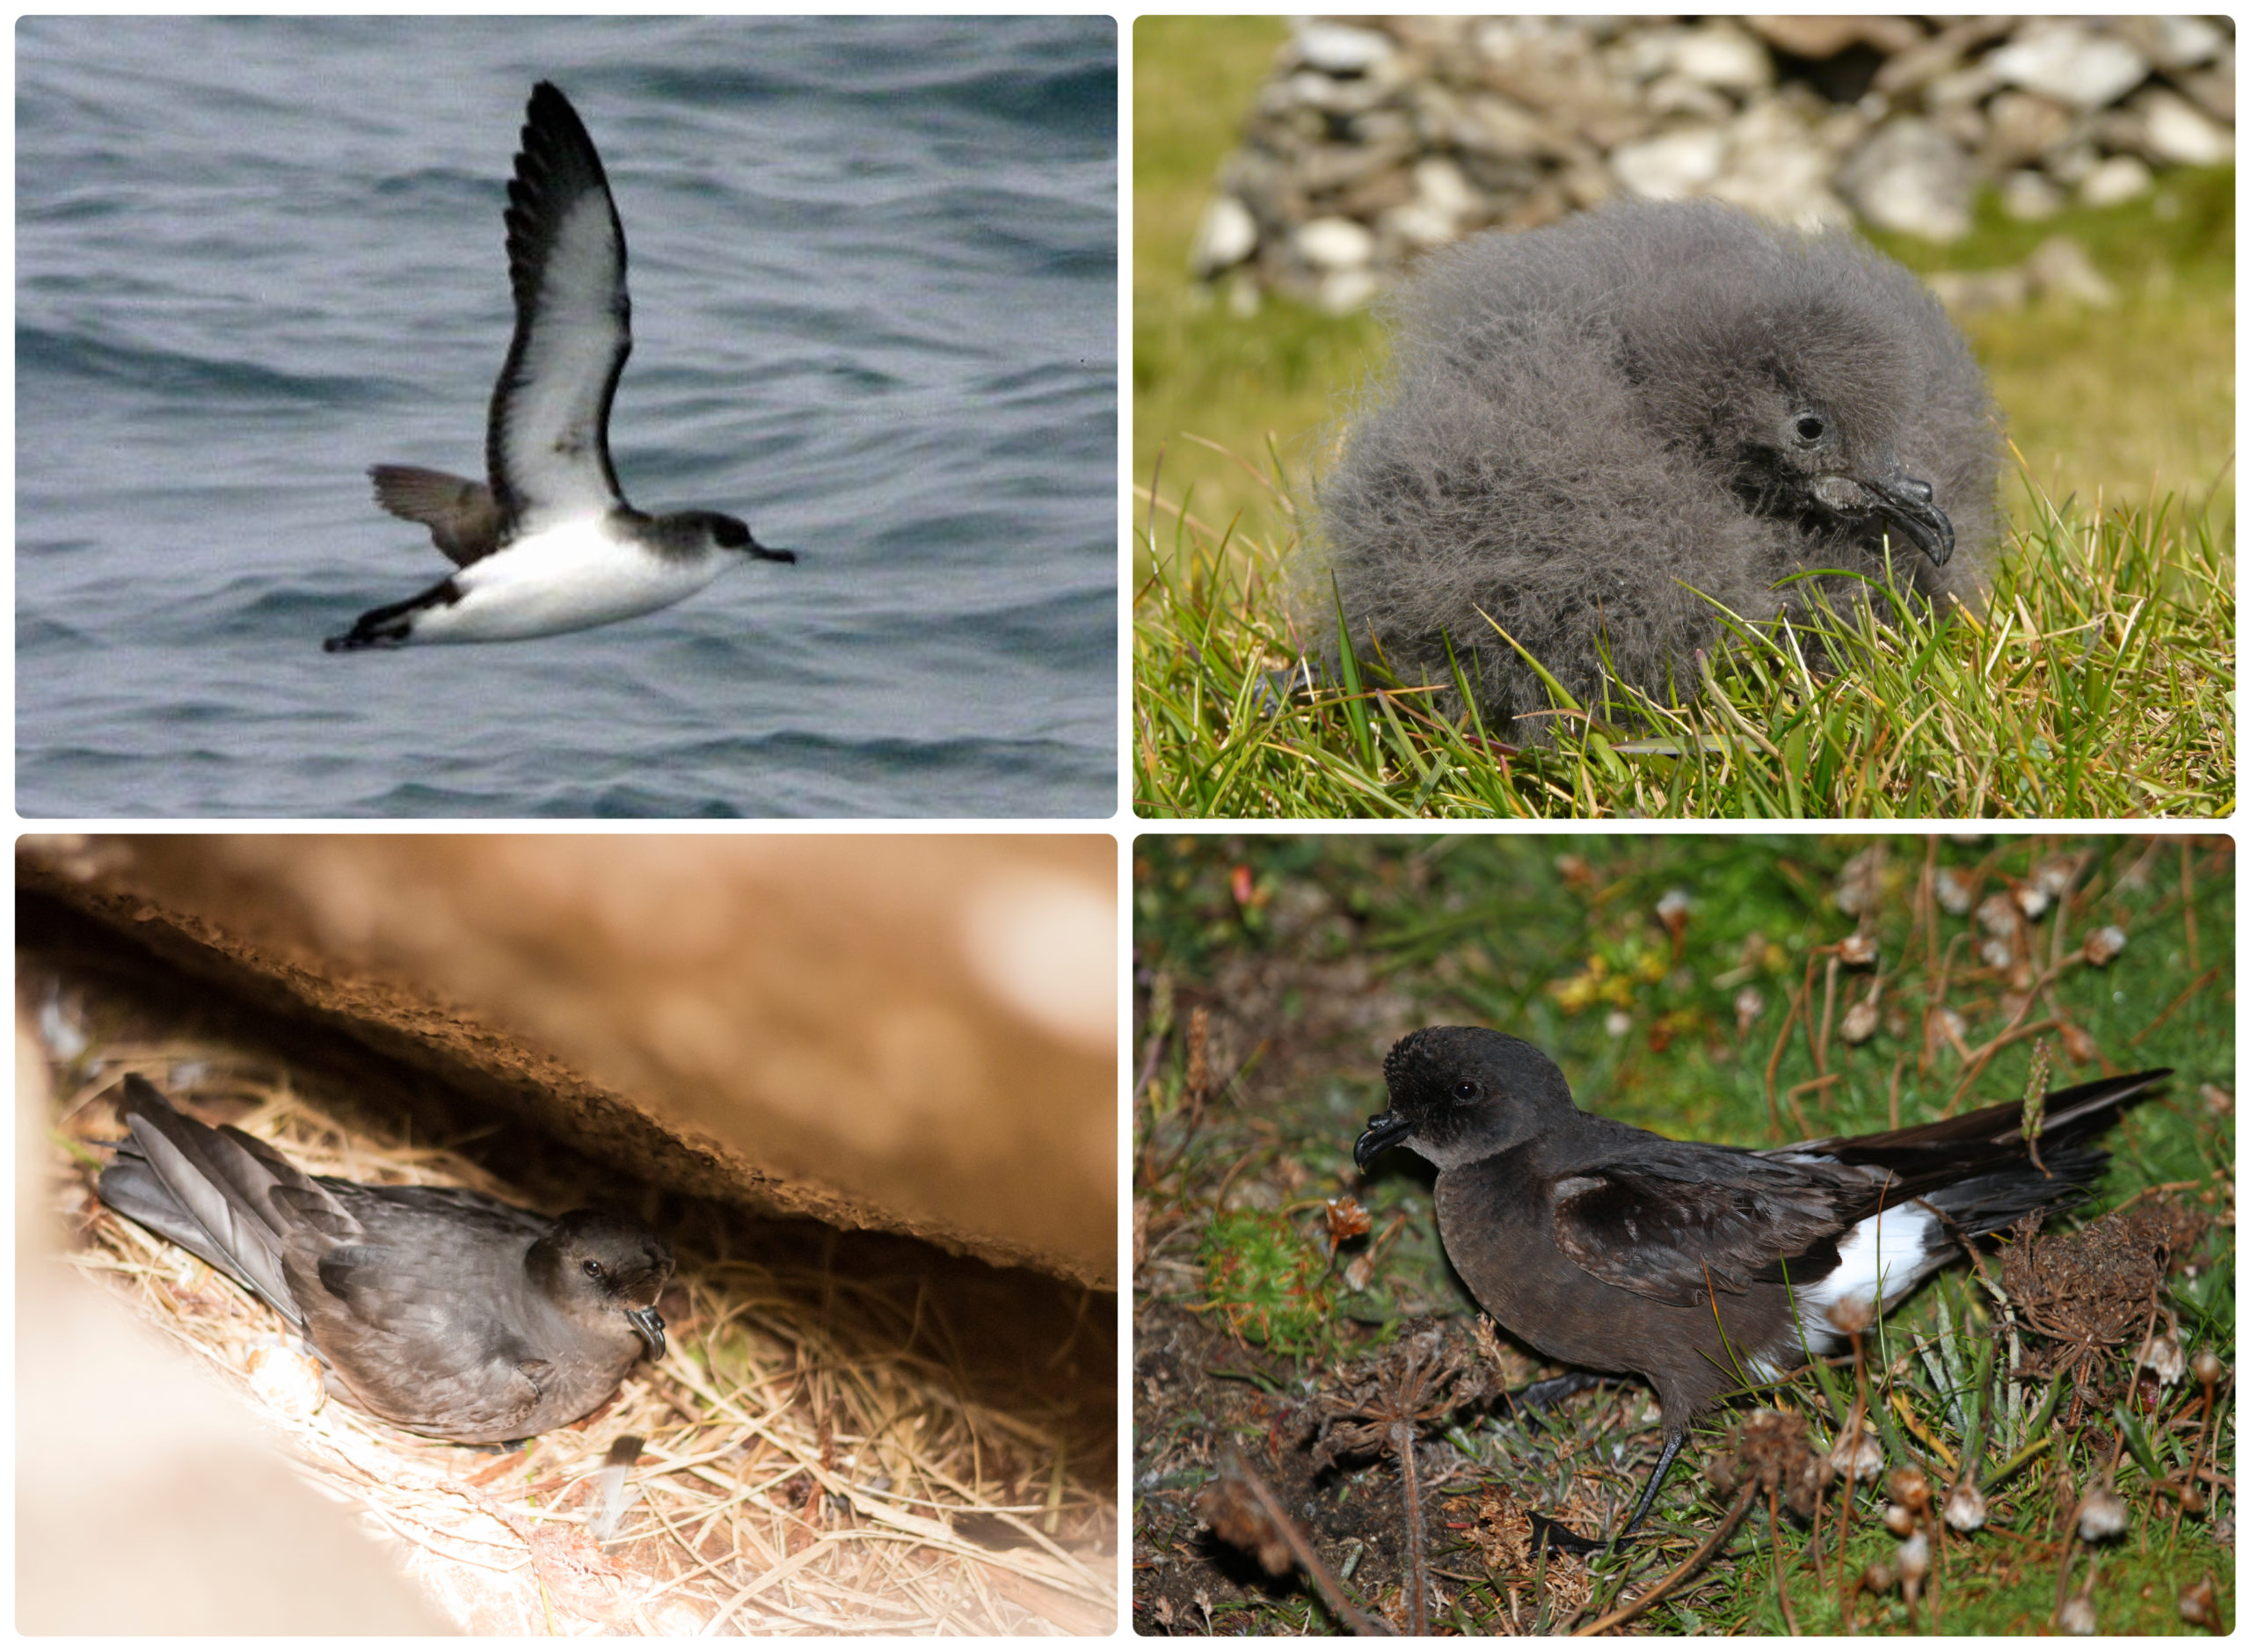 Sea birds on the west coast of Scotland will be monitored under the project